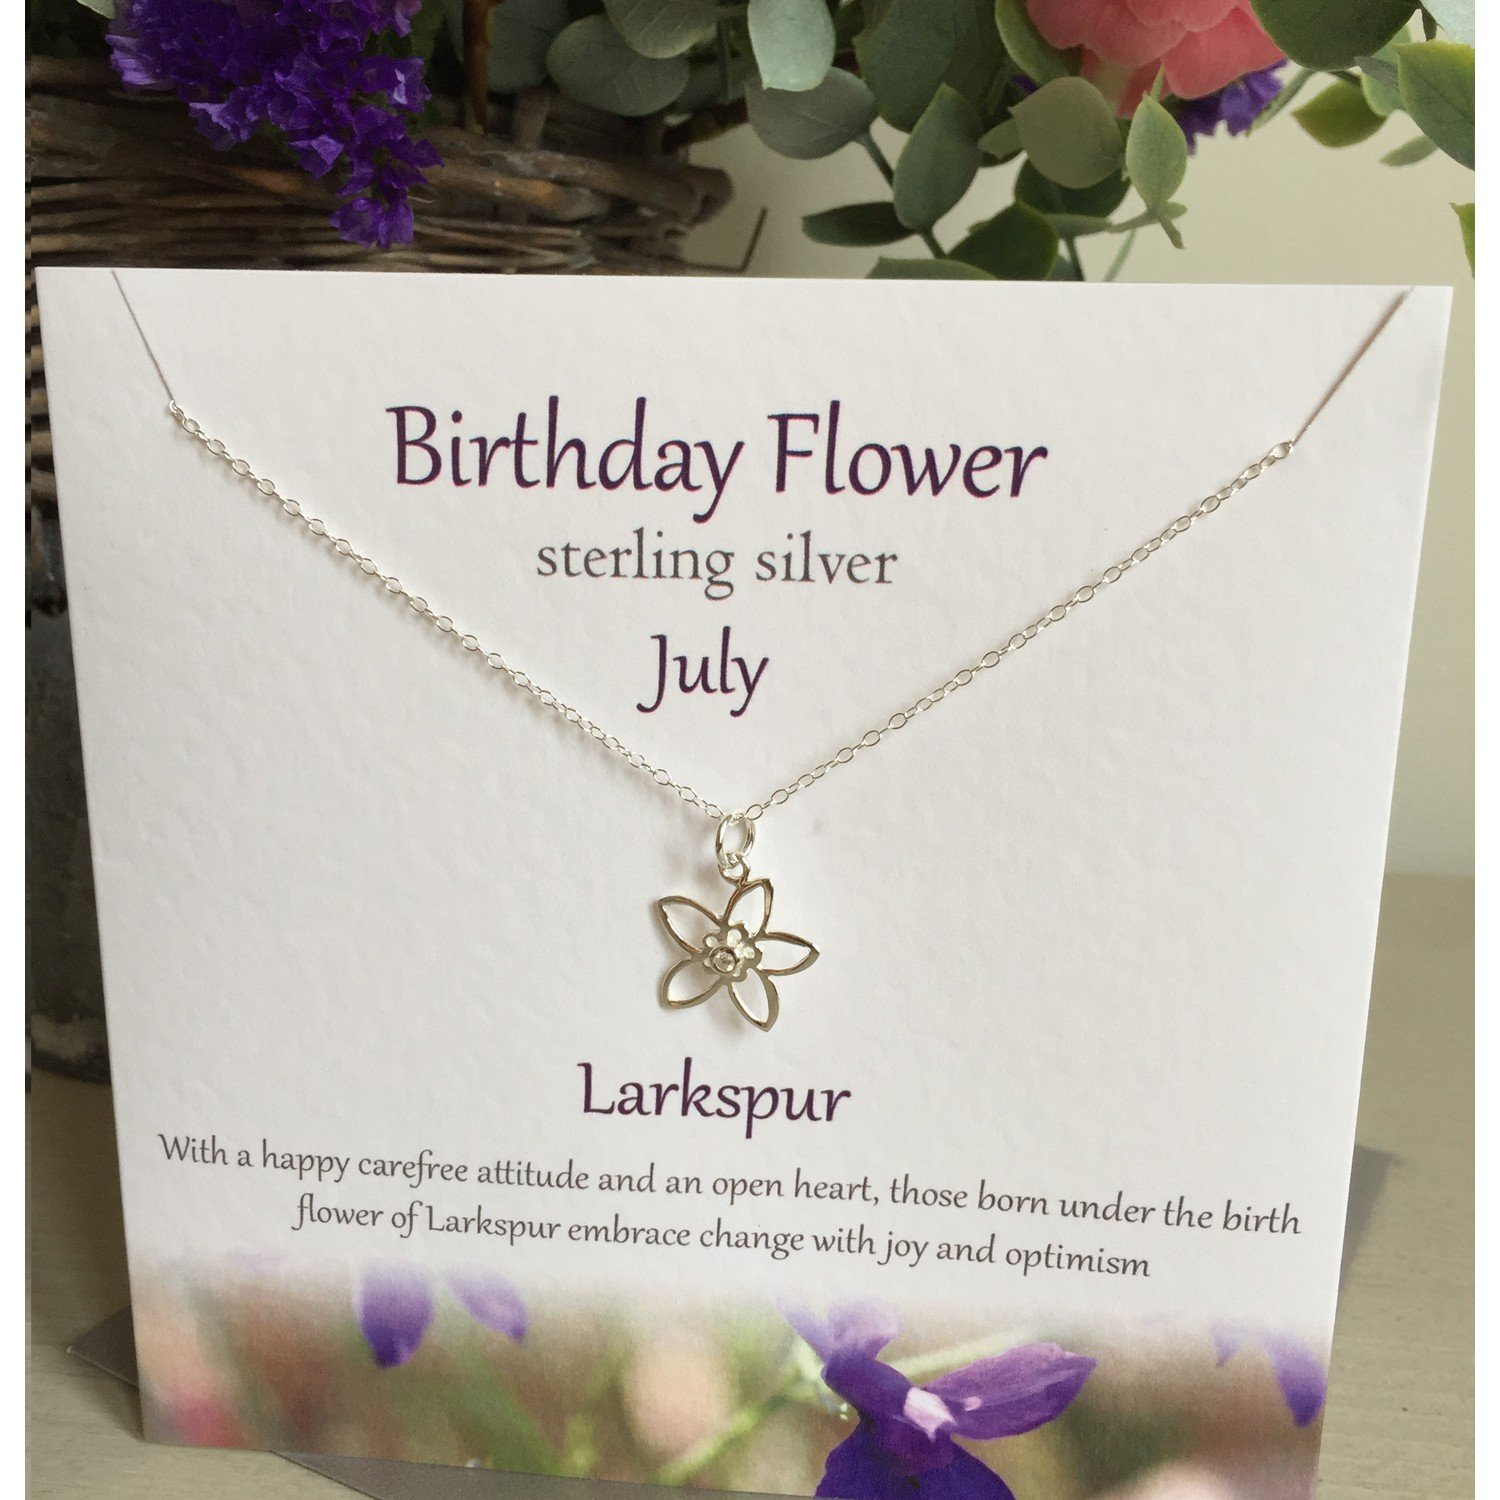 July Birth Flower With Neckpiece Design